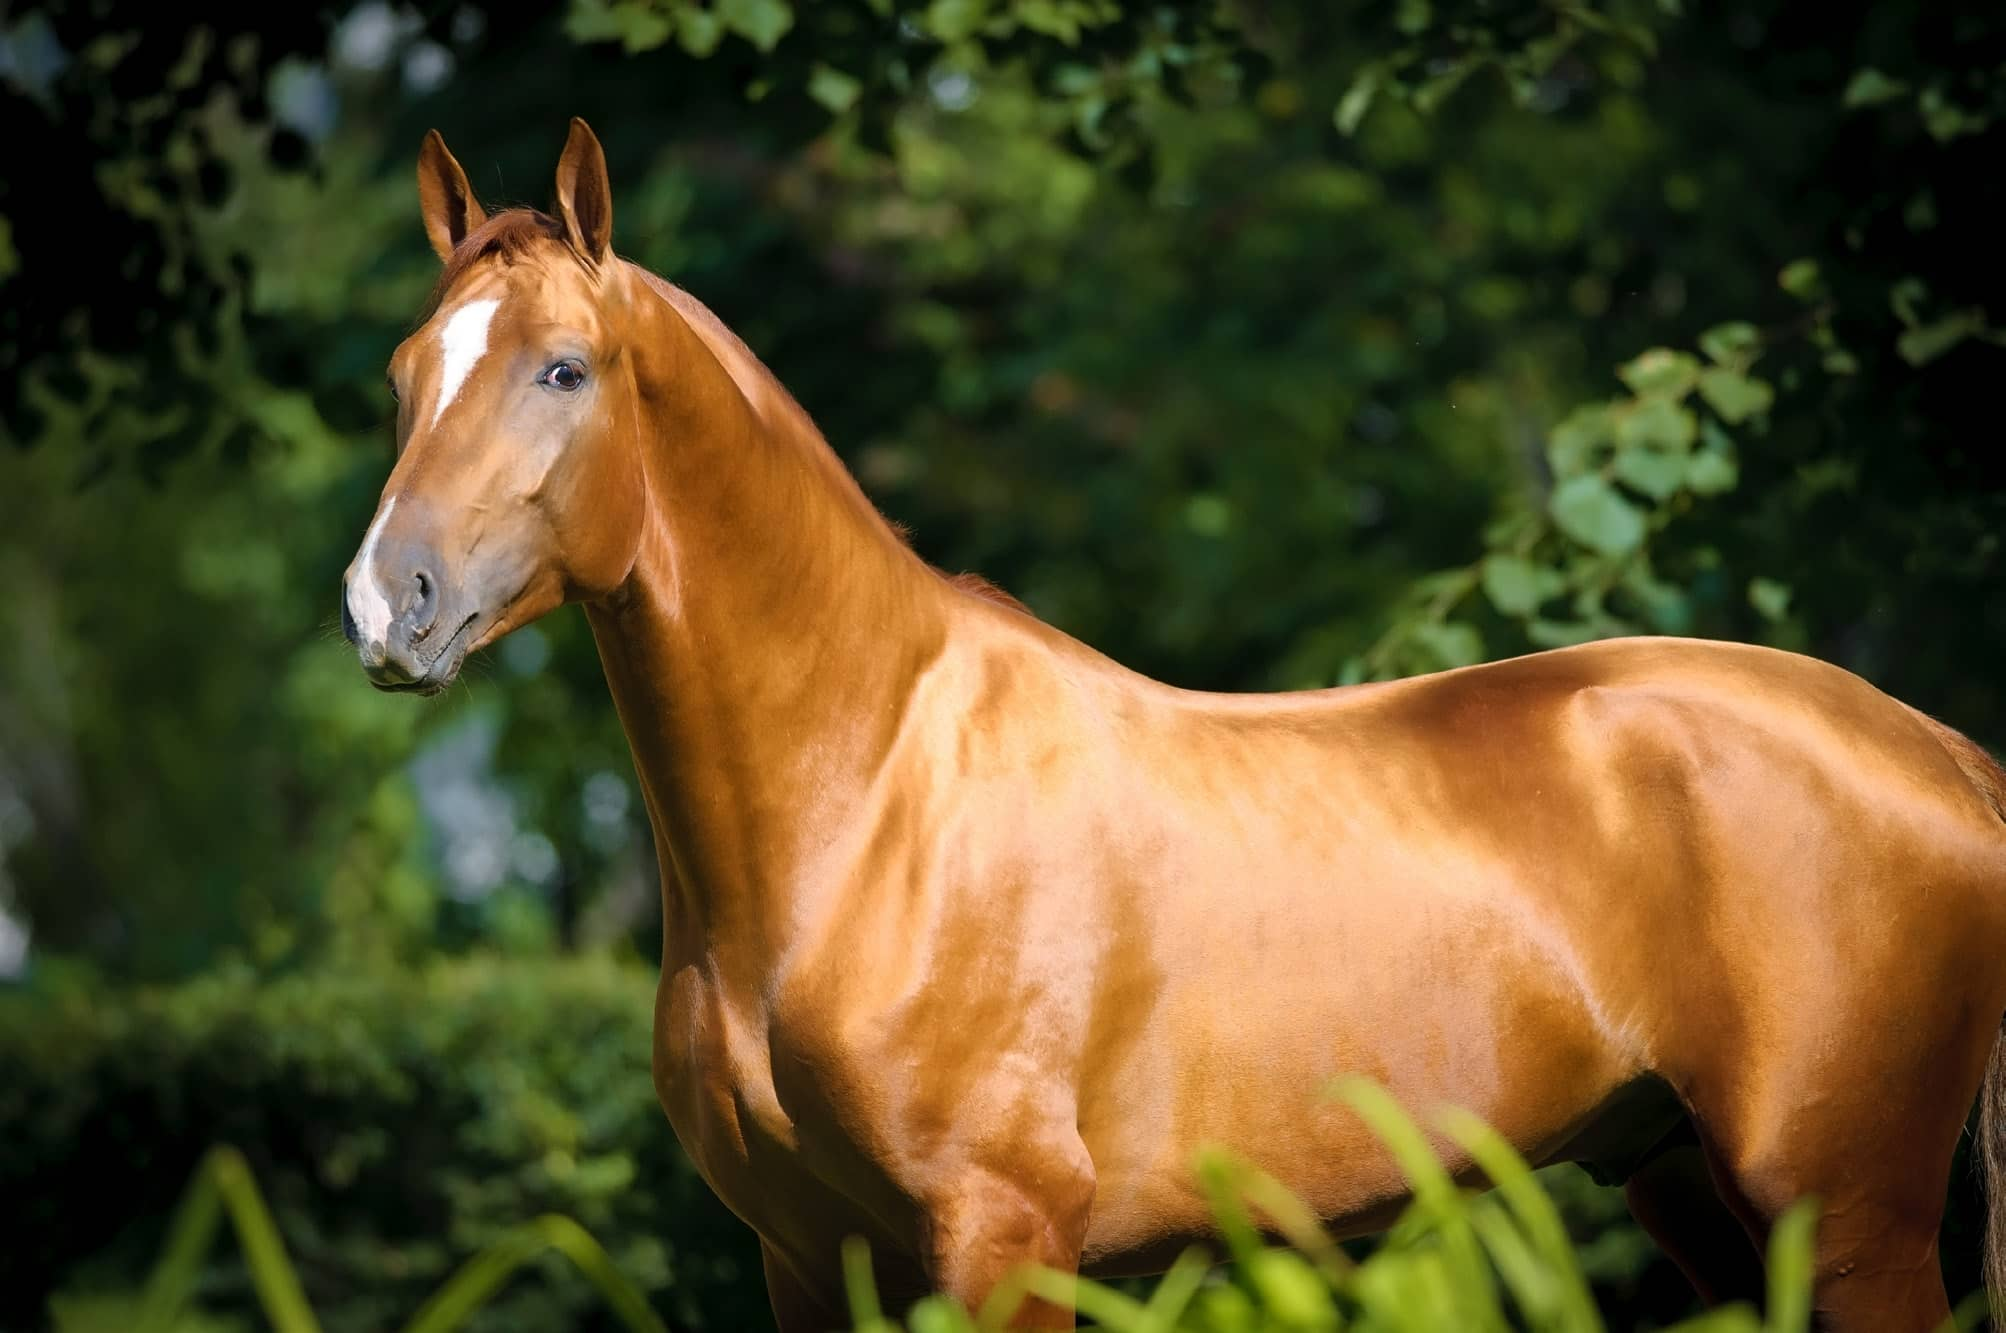 What Can I Feed My Horse To Make His Coat Shiny?